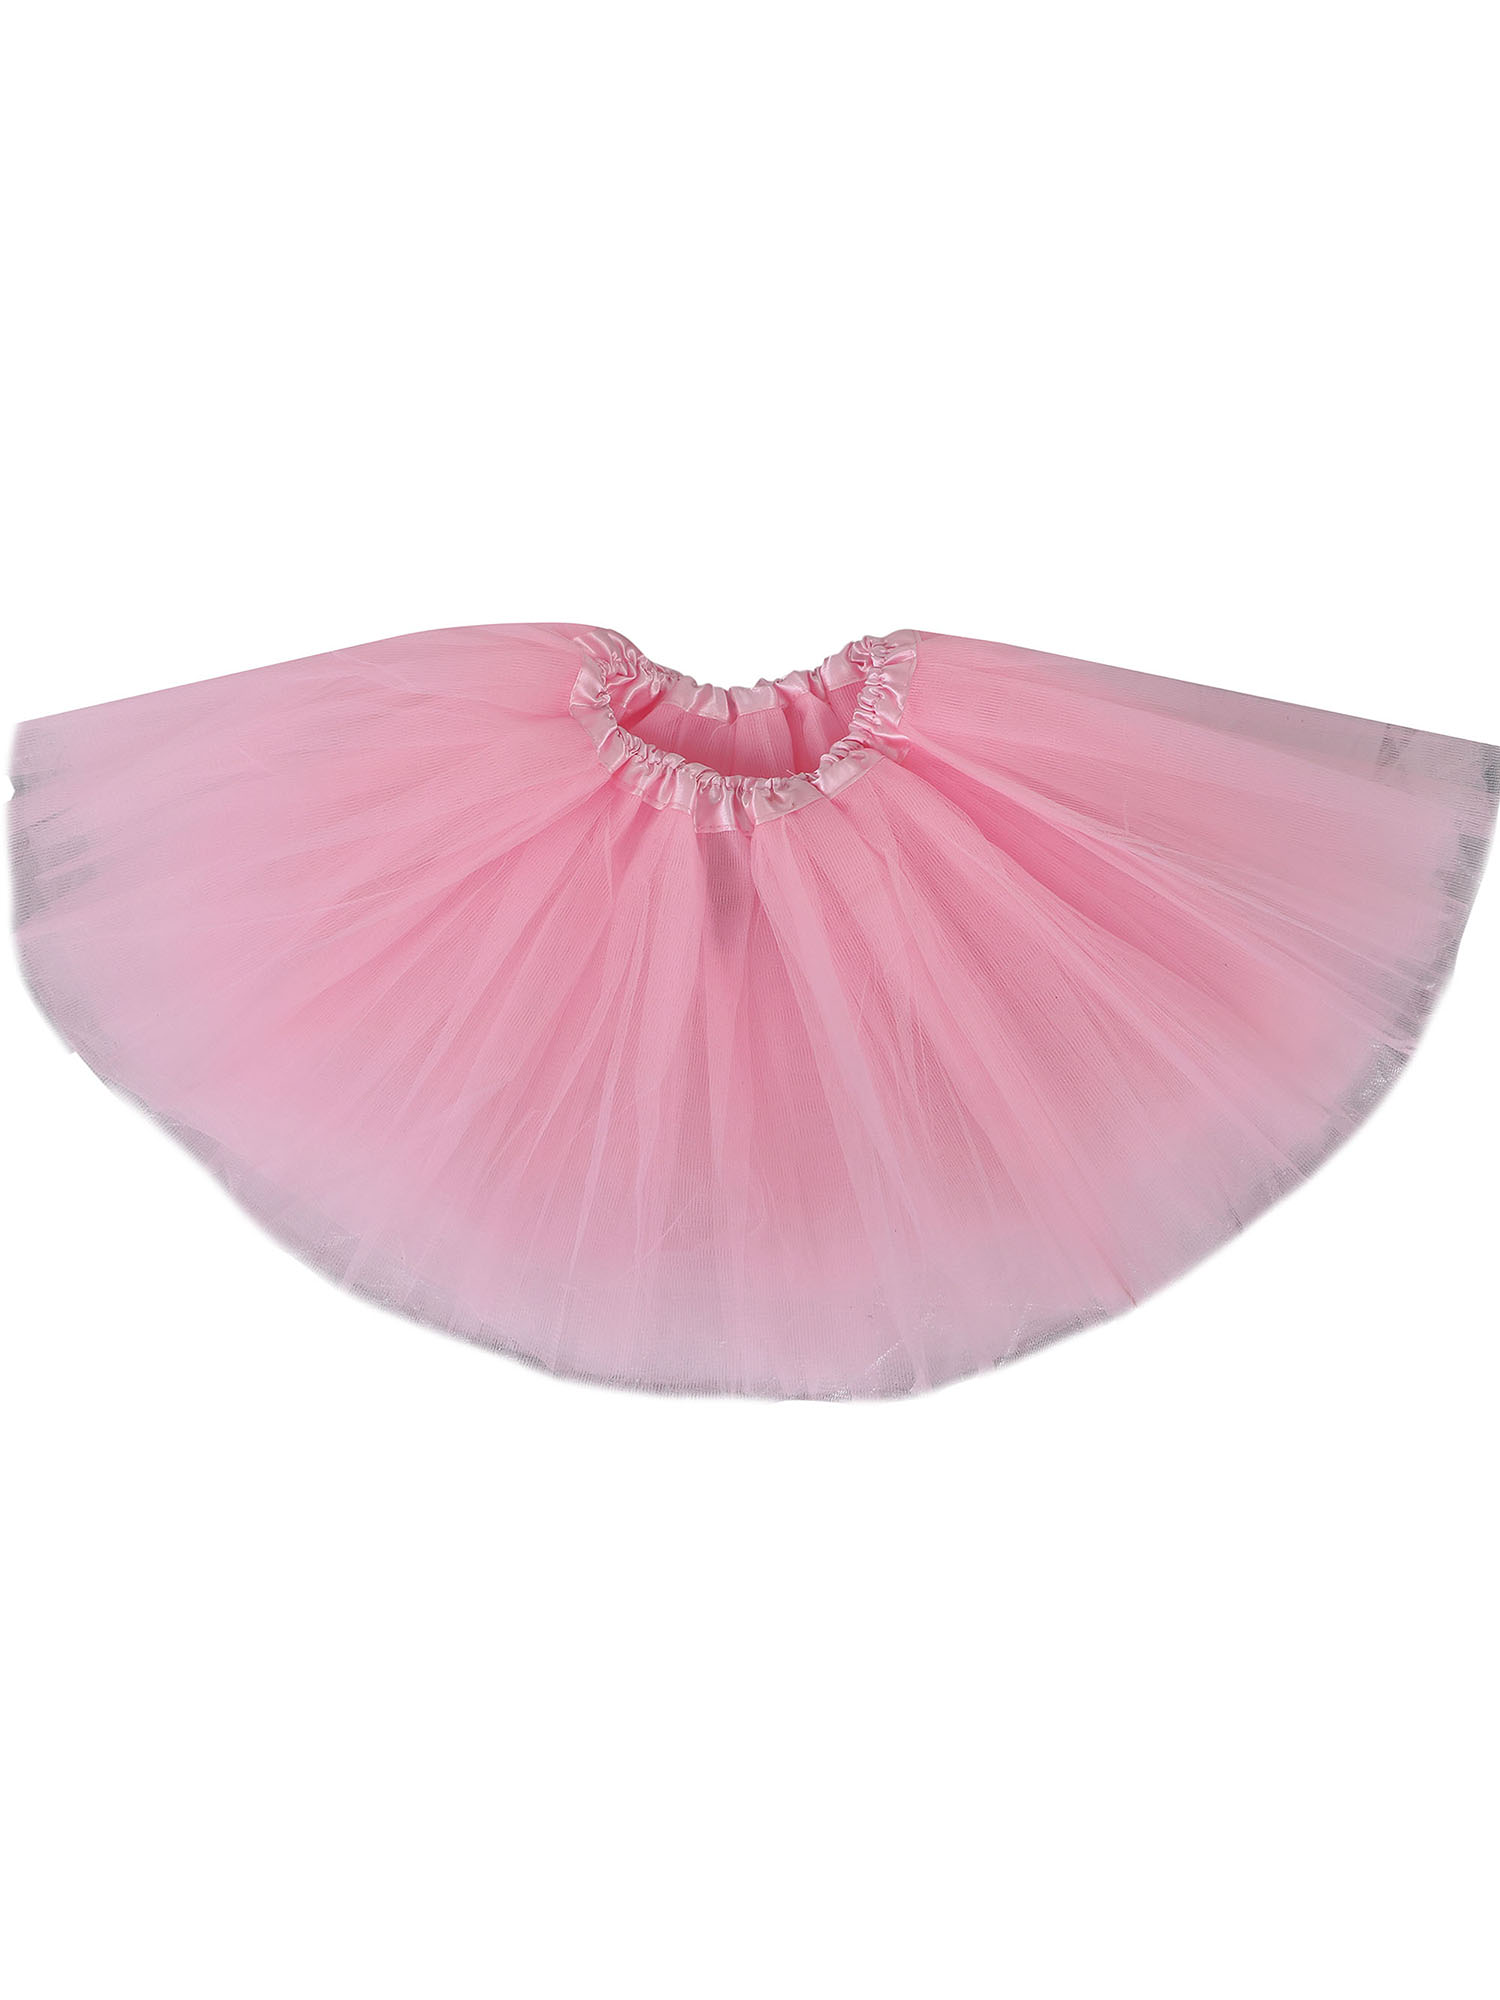 Baby's 4 Layered Tulle Classic Princess Dress-up Tutu Skirt,Light Pink,6-18 mont